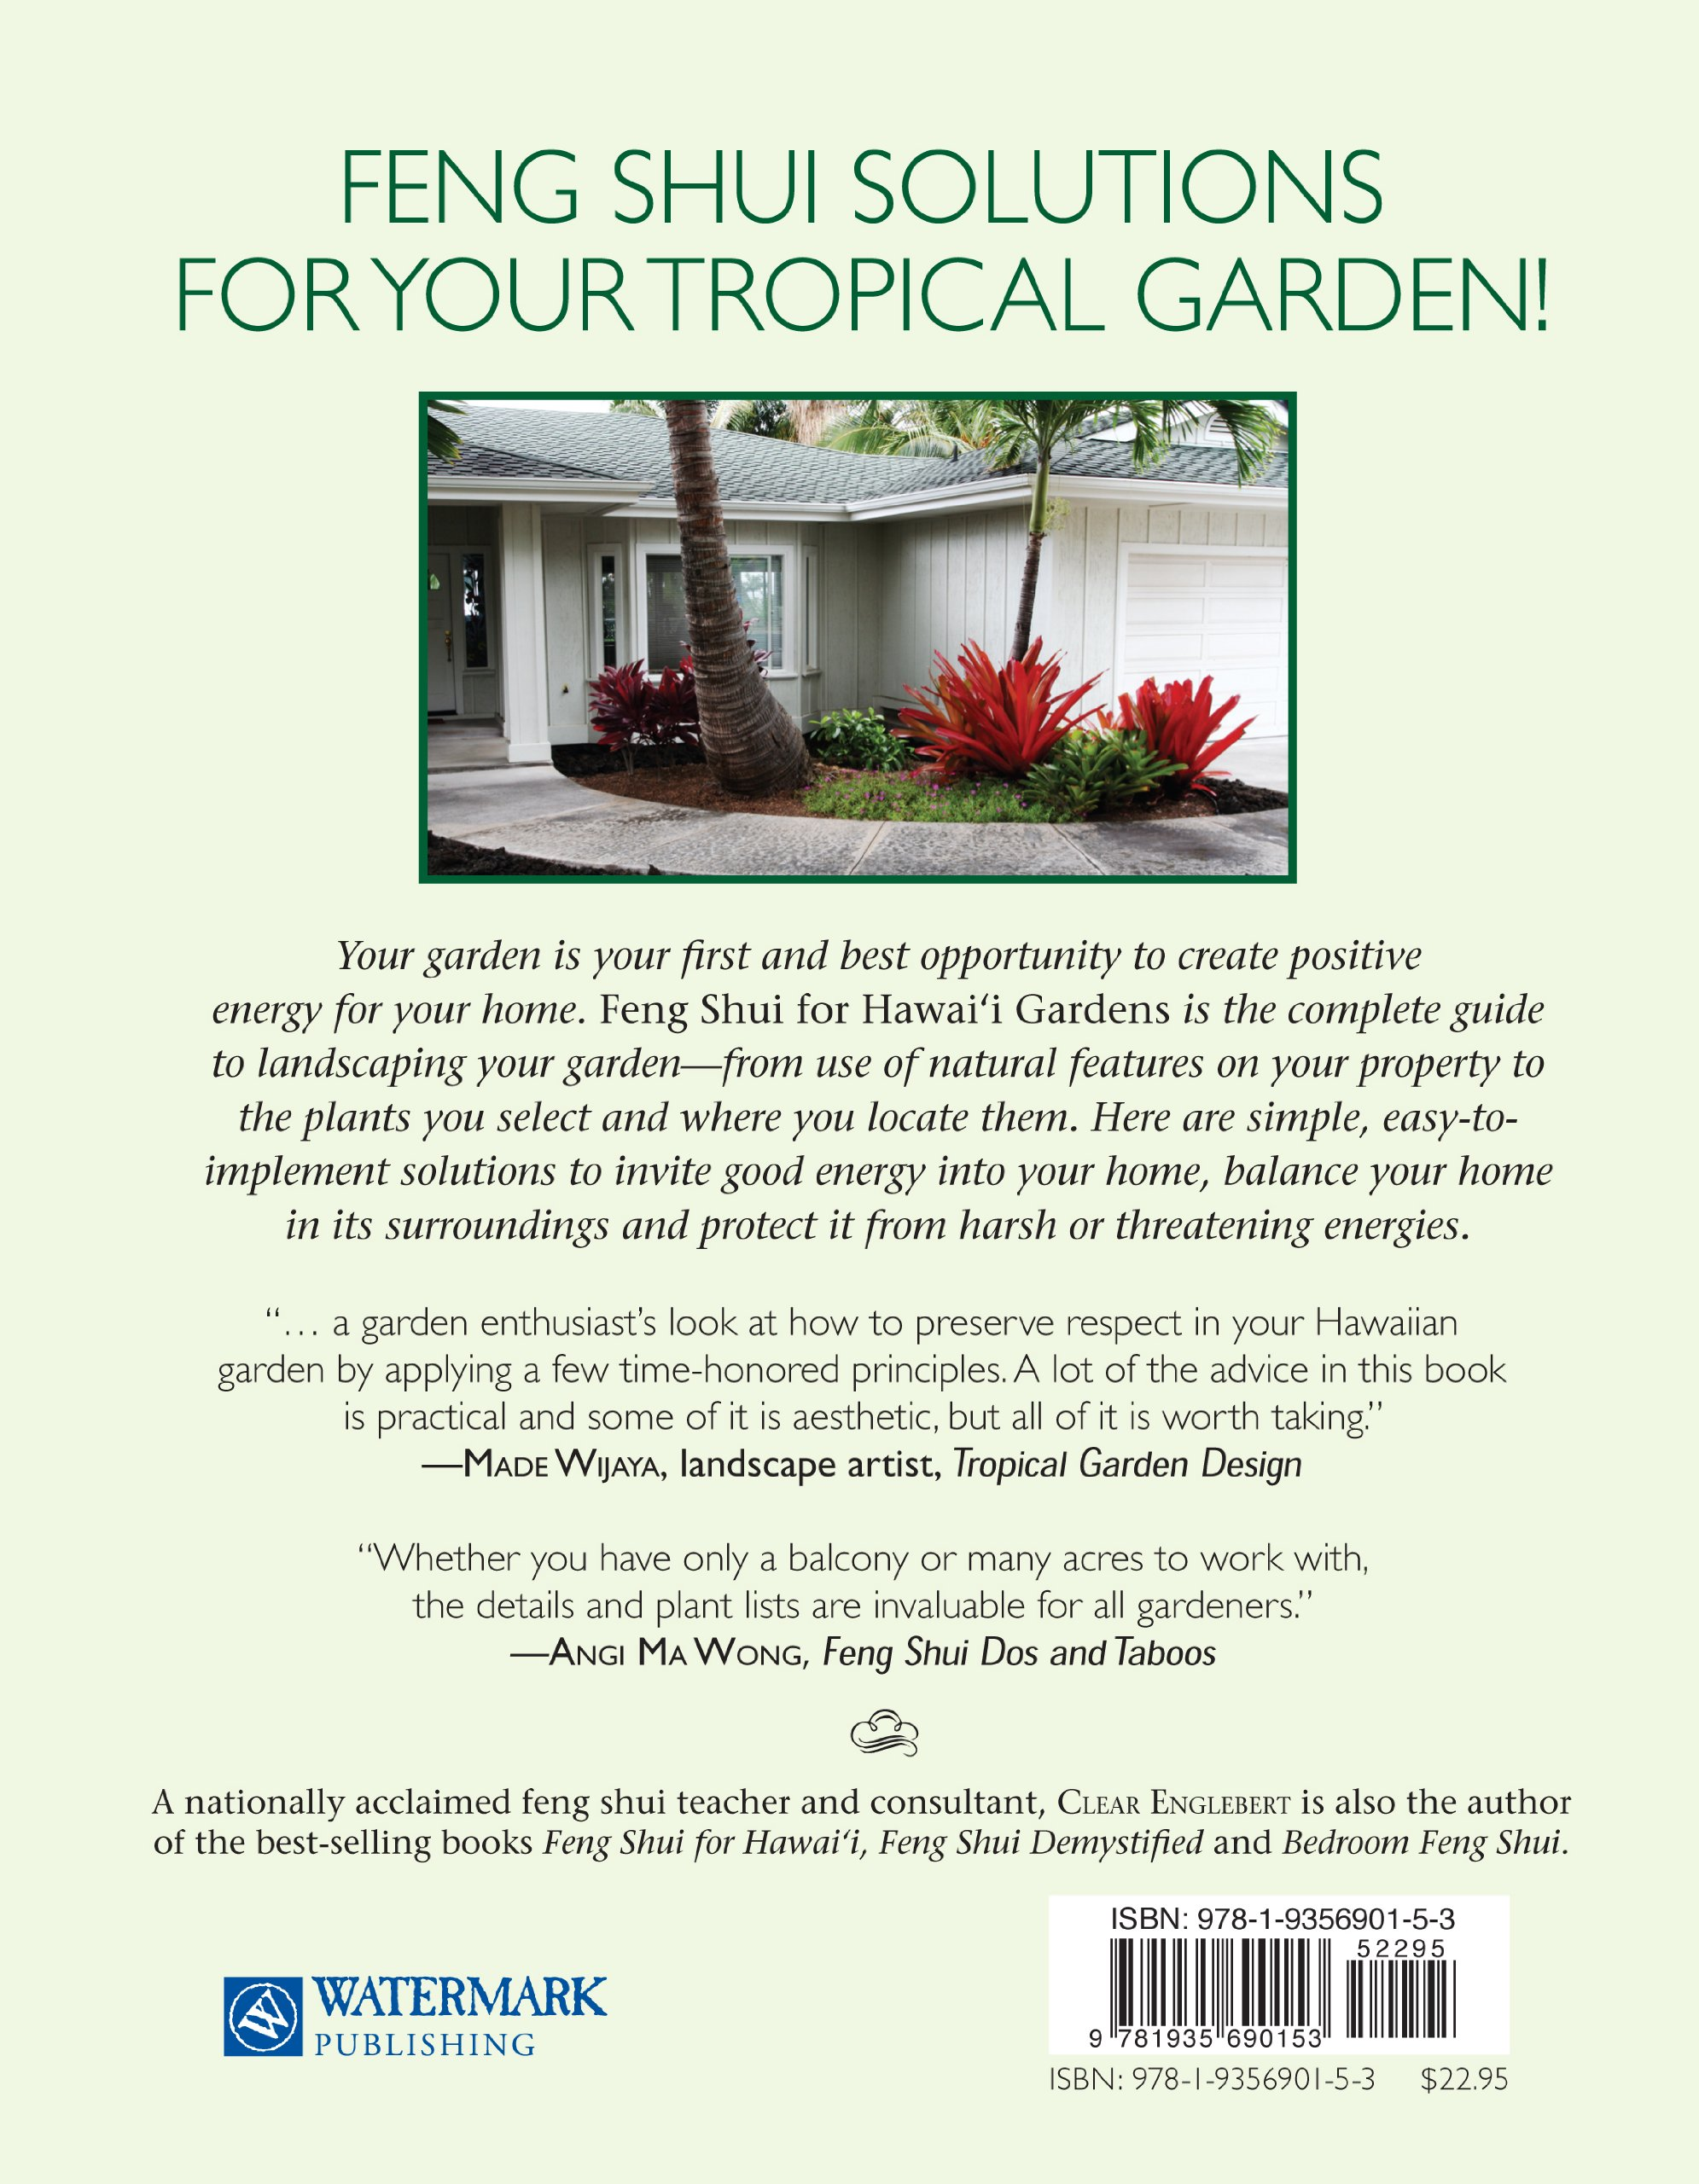 Feng Shui for Hawaii Gardens: The Flow of Chi Energy in the Tropical Landscape